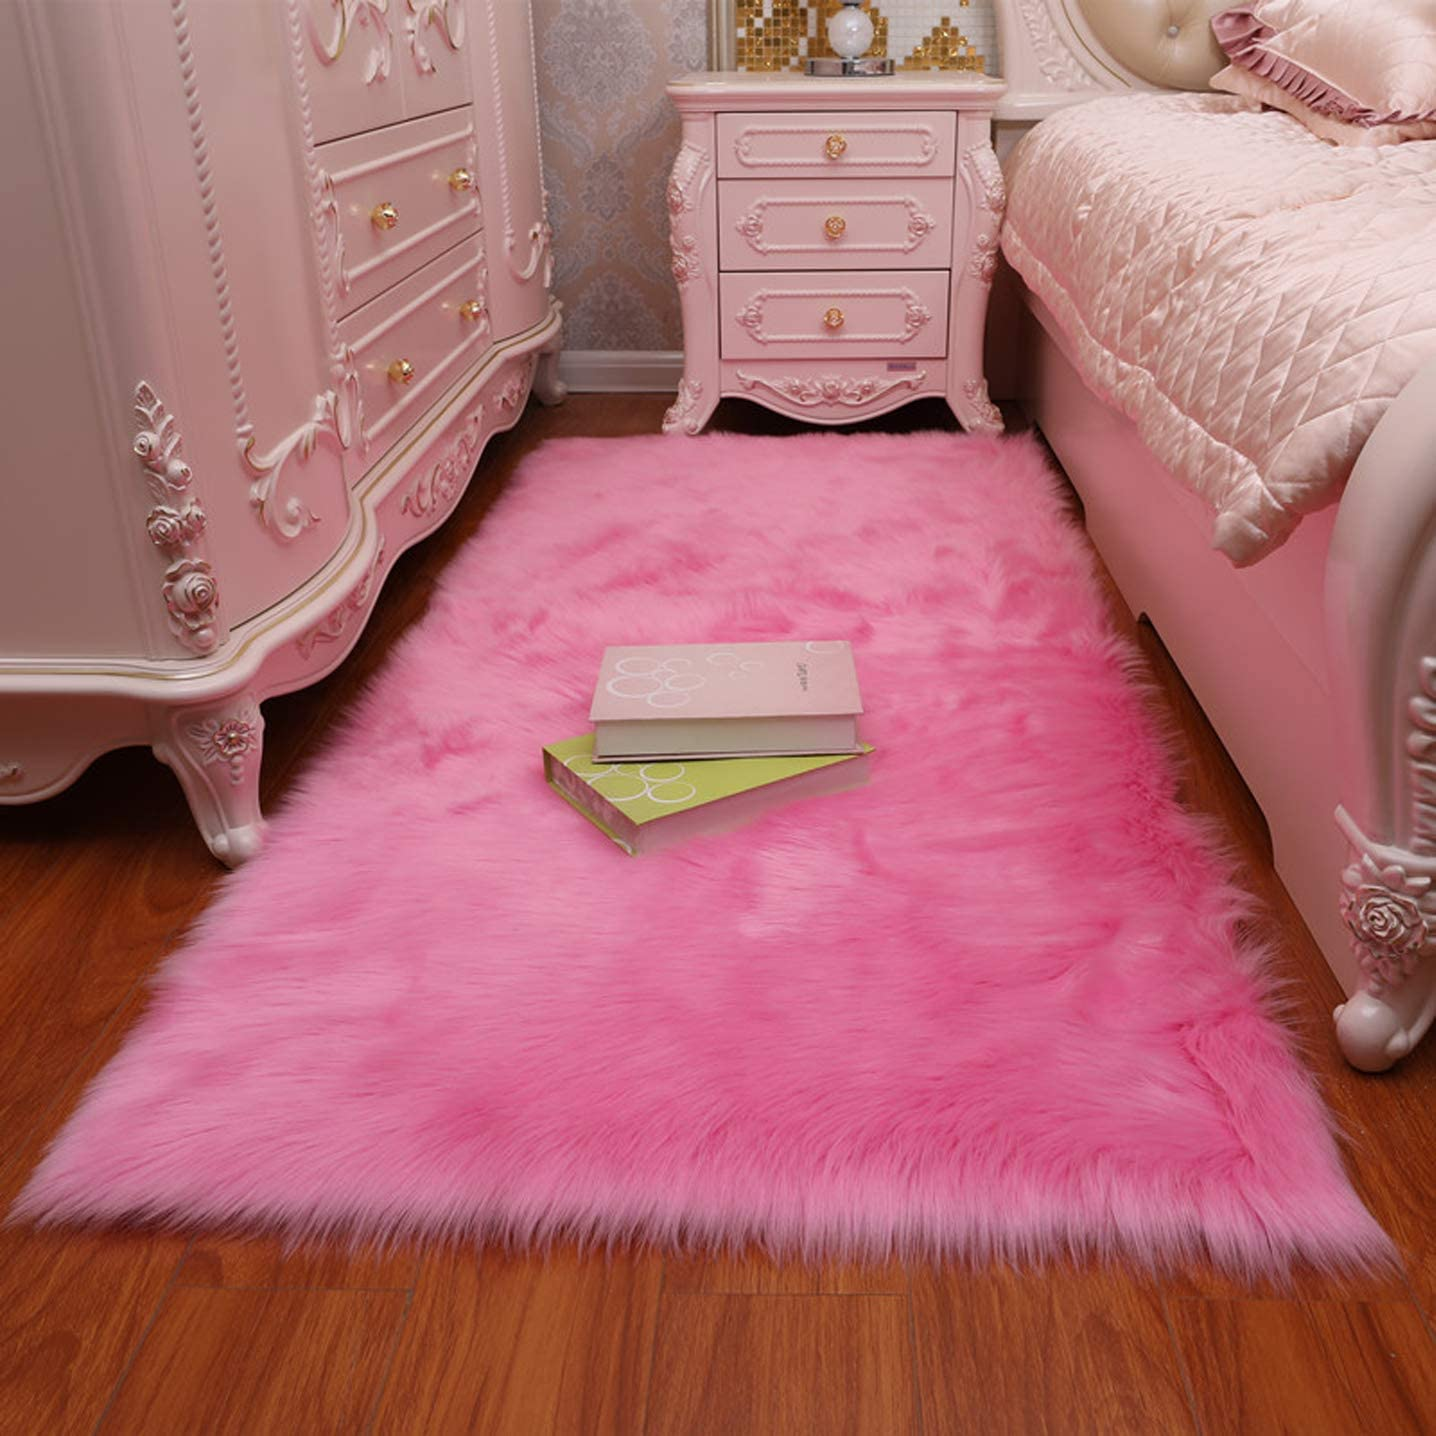 Faux Fur Sheepskin Area Rug,Super Soft Faux Sheepskin Fur Area Rugs Silky Plush Carpet for Bedside Floor Mat Sofa 4 x 6 Feet Pink